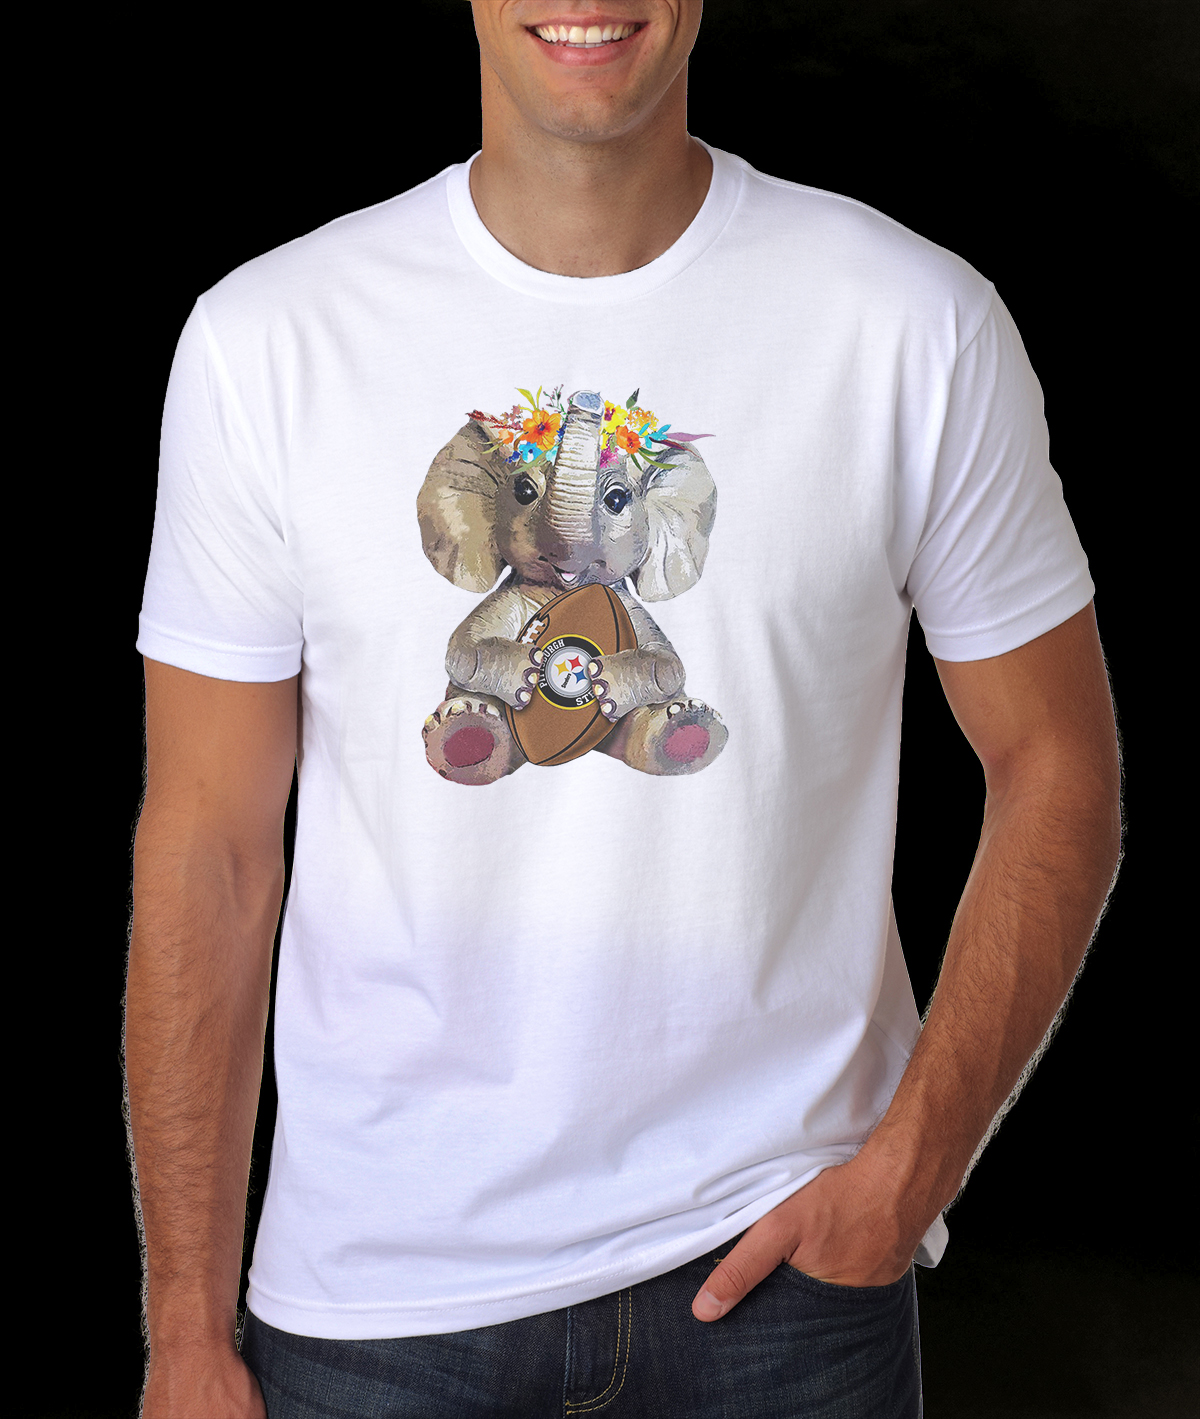 Elephant flower Pittsburgh Steelers shirt